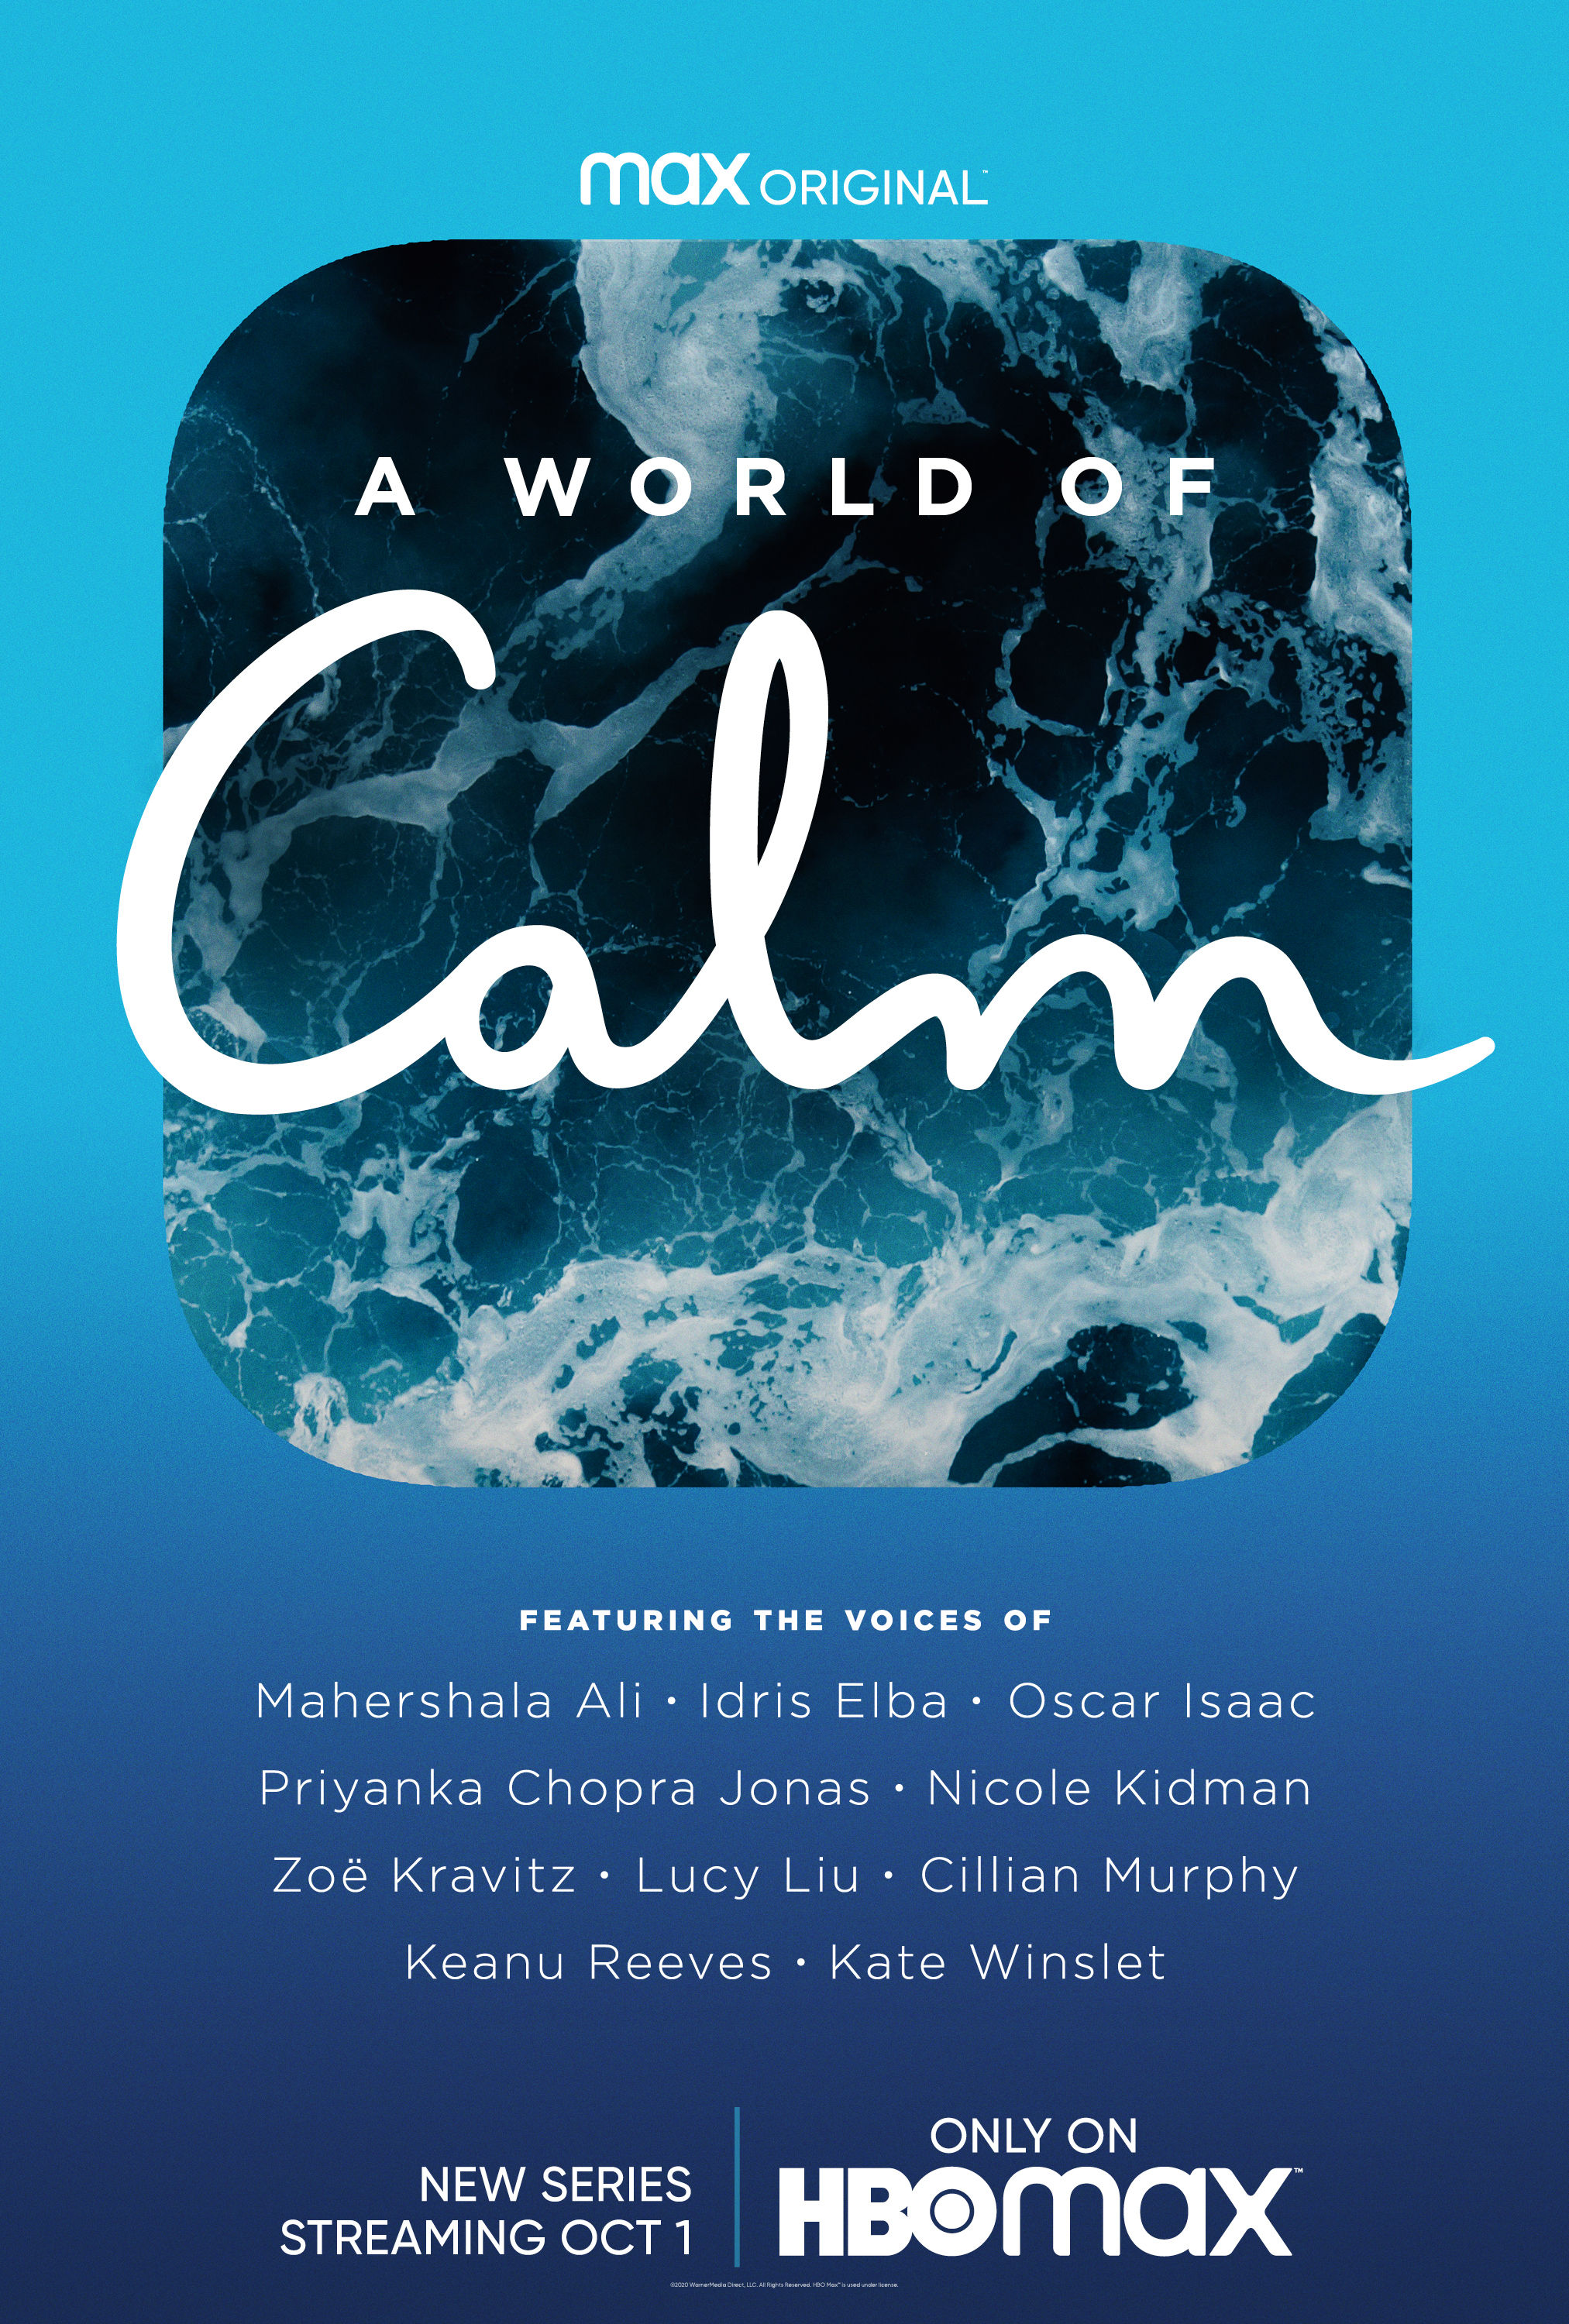 A World of Calm ne zaman